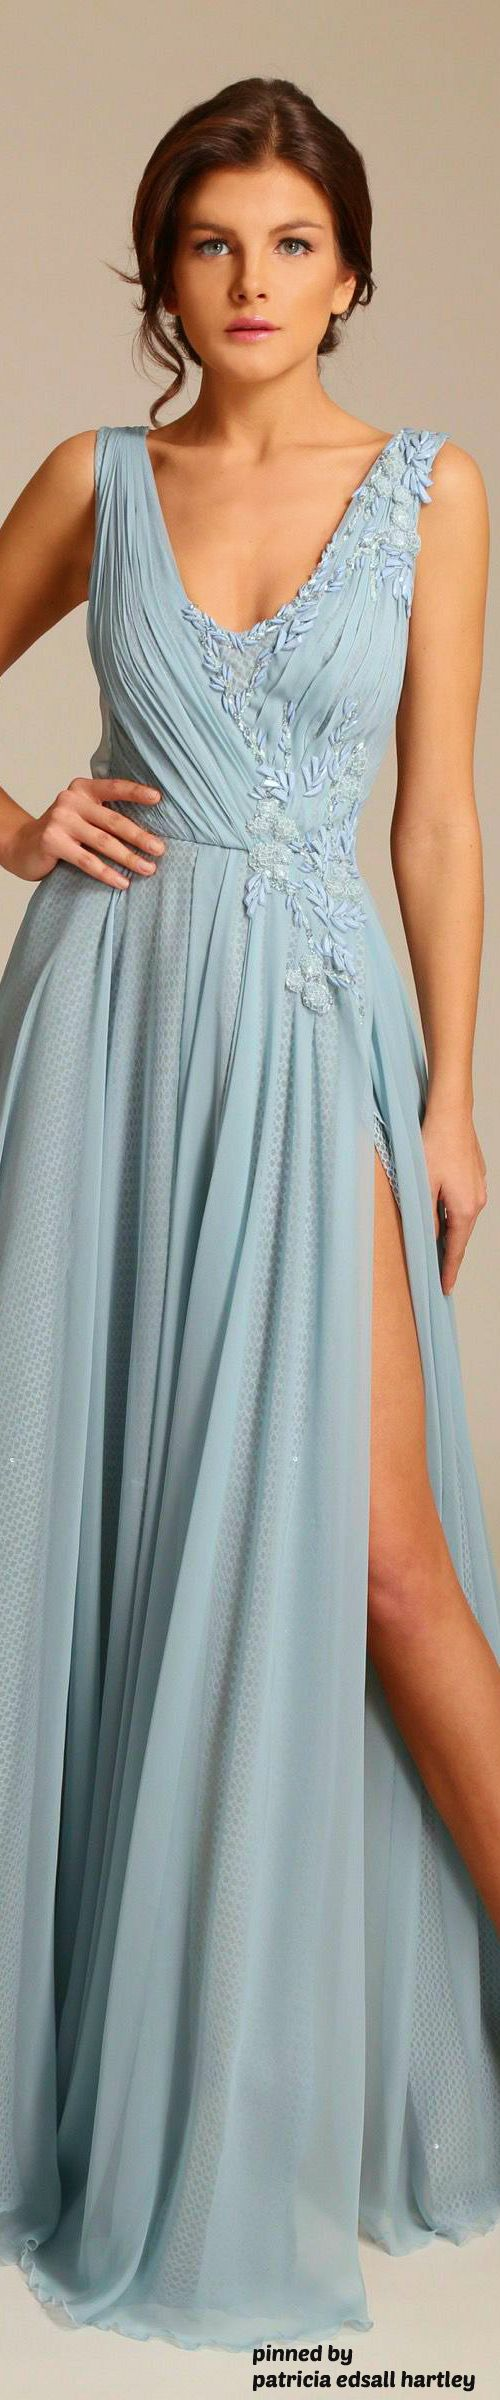 Abed Mahfouz SS 2016                                                                                                                                                                                 More